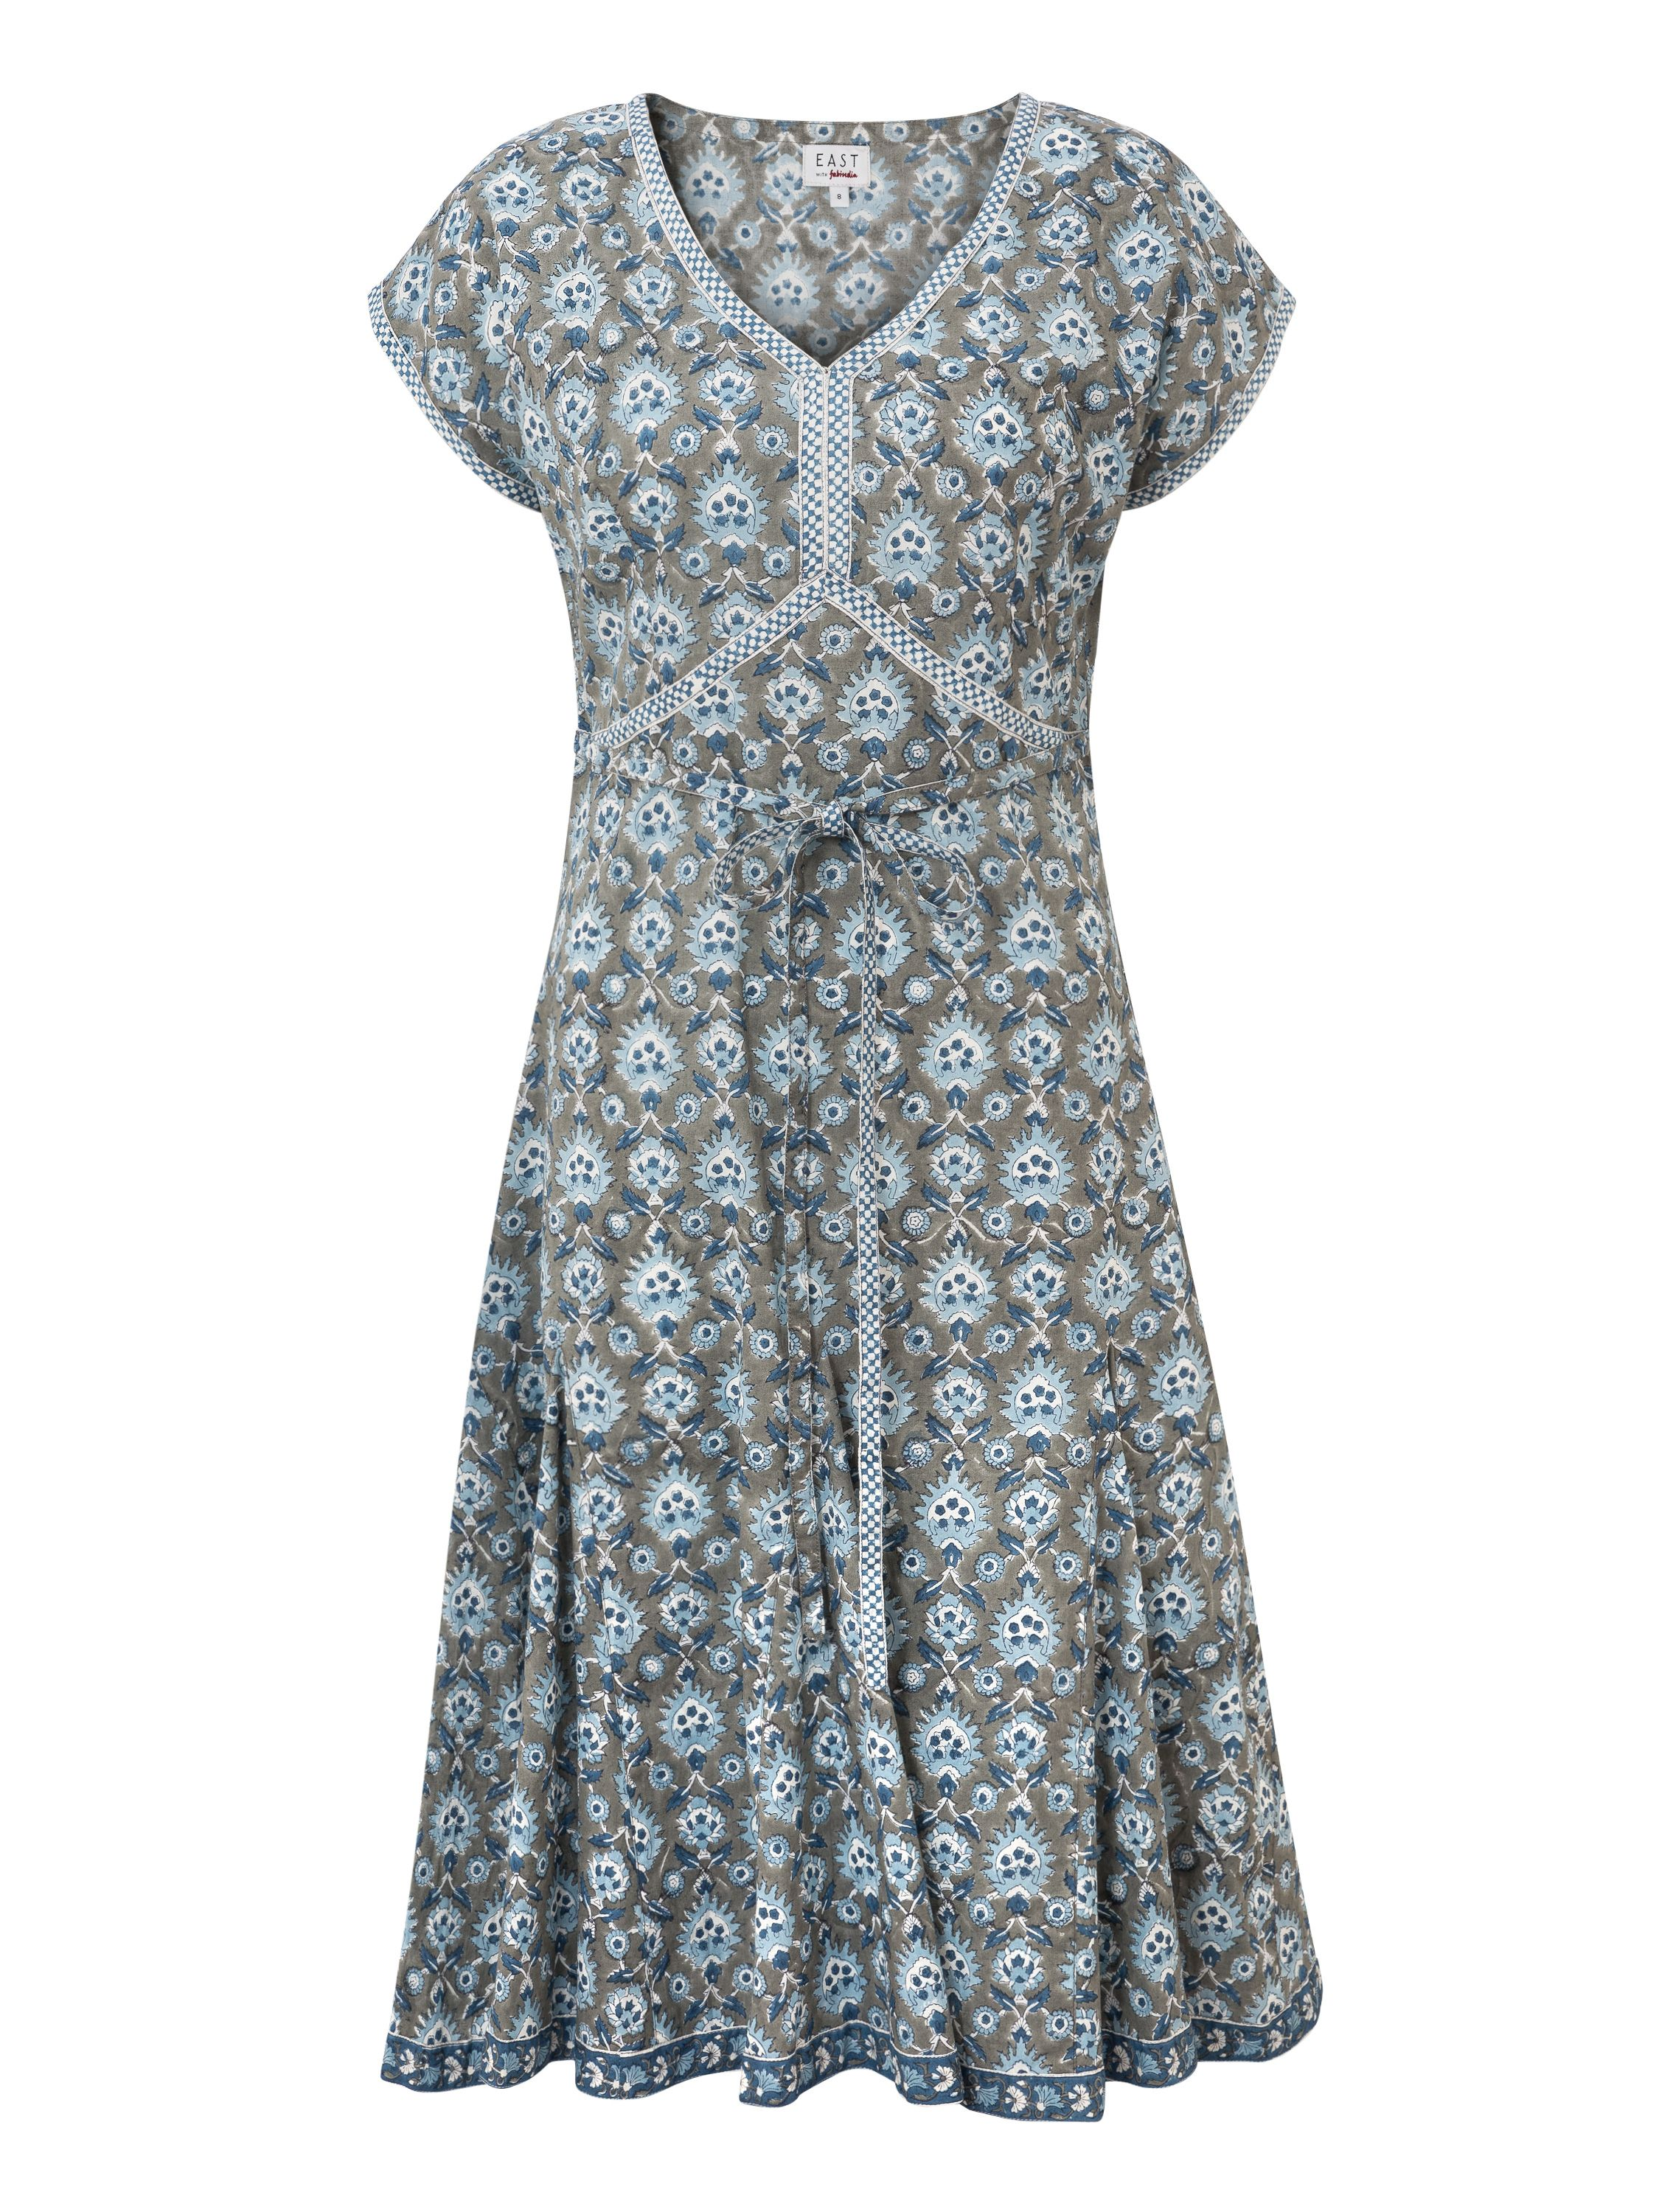 East Sureka Print Dress, Grey